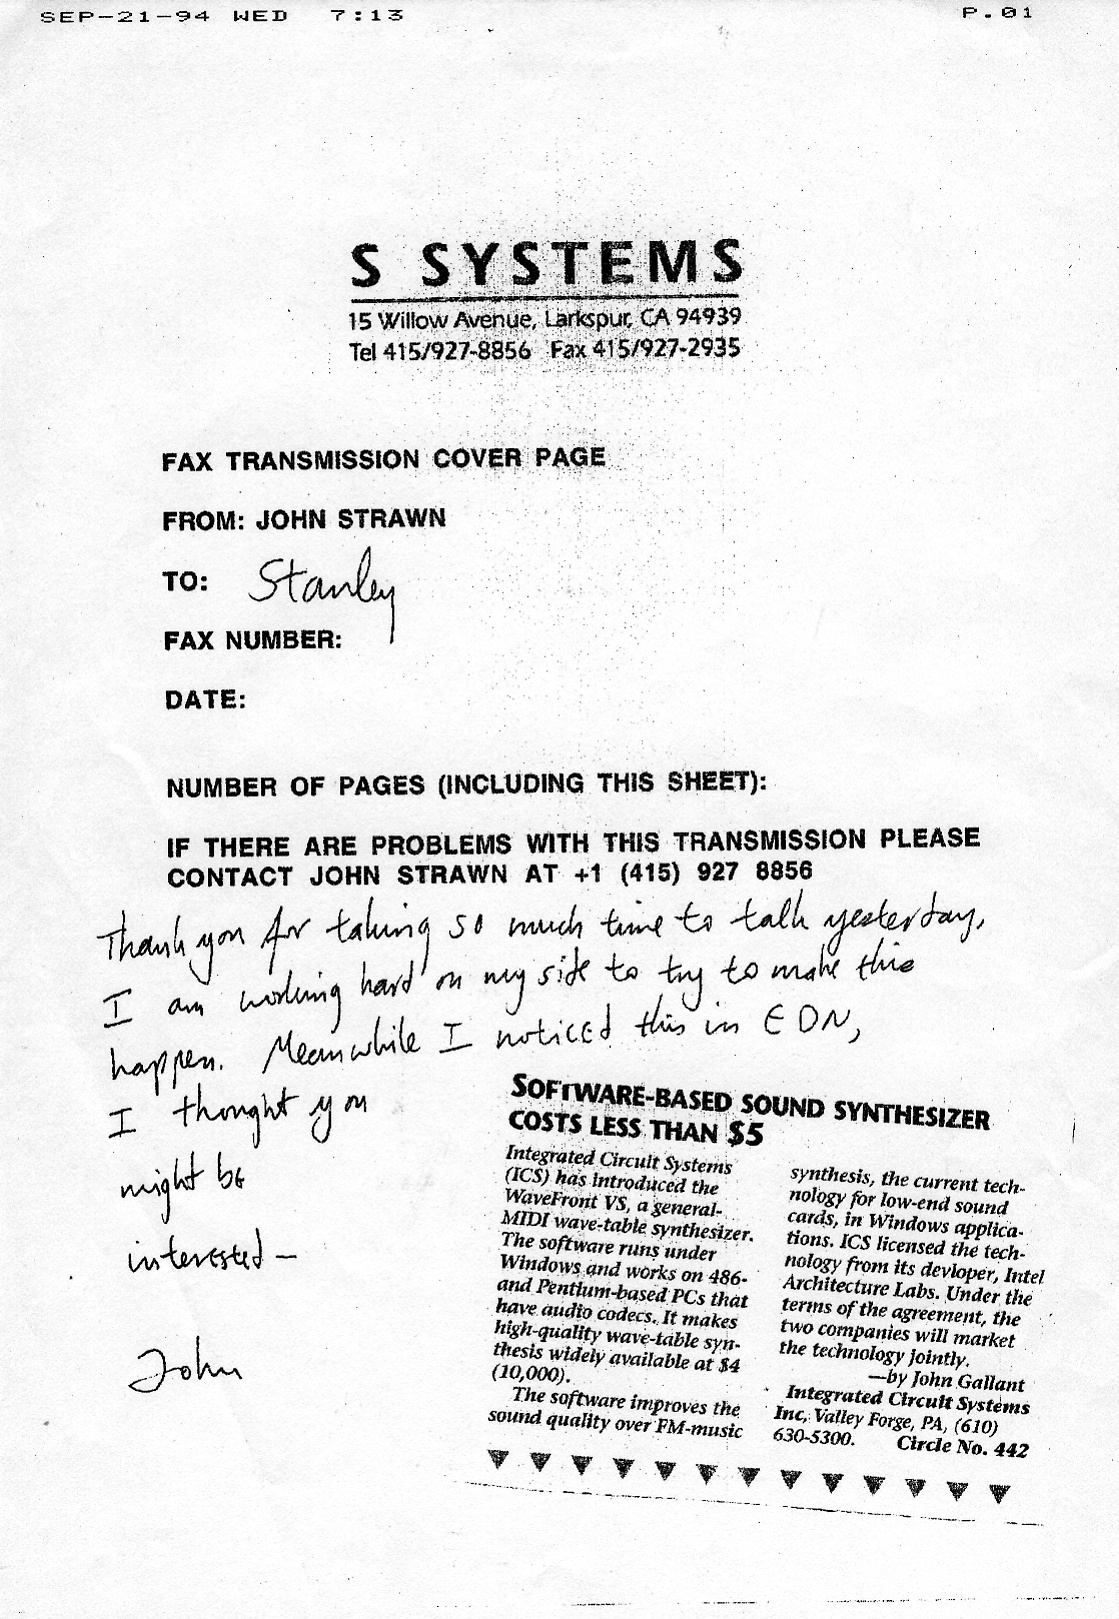 940921 S SYSTEMS FAX